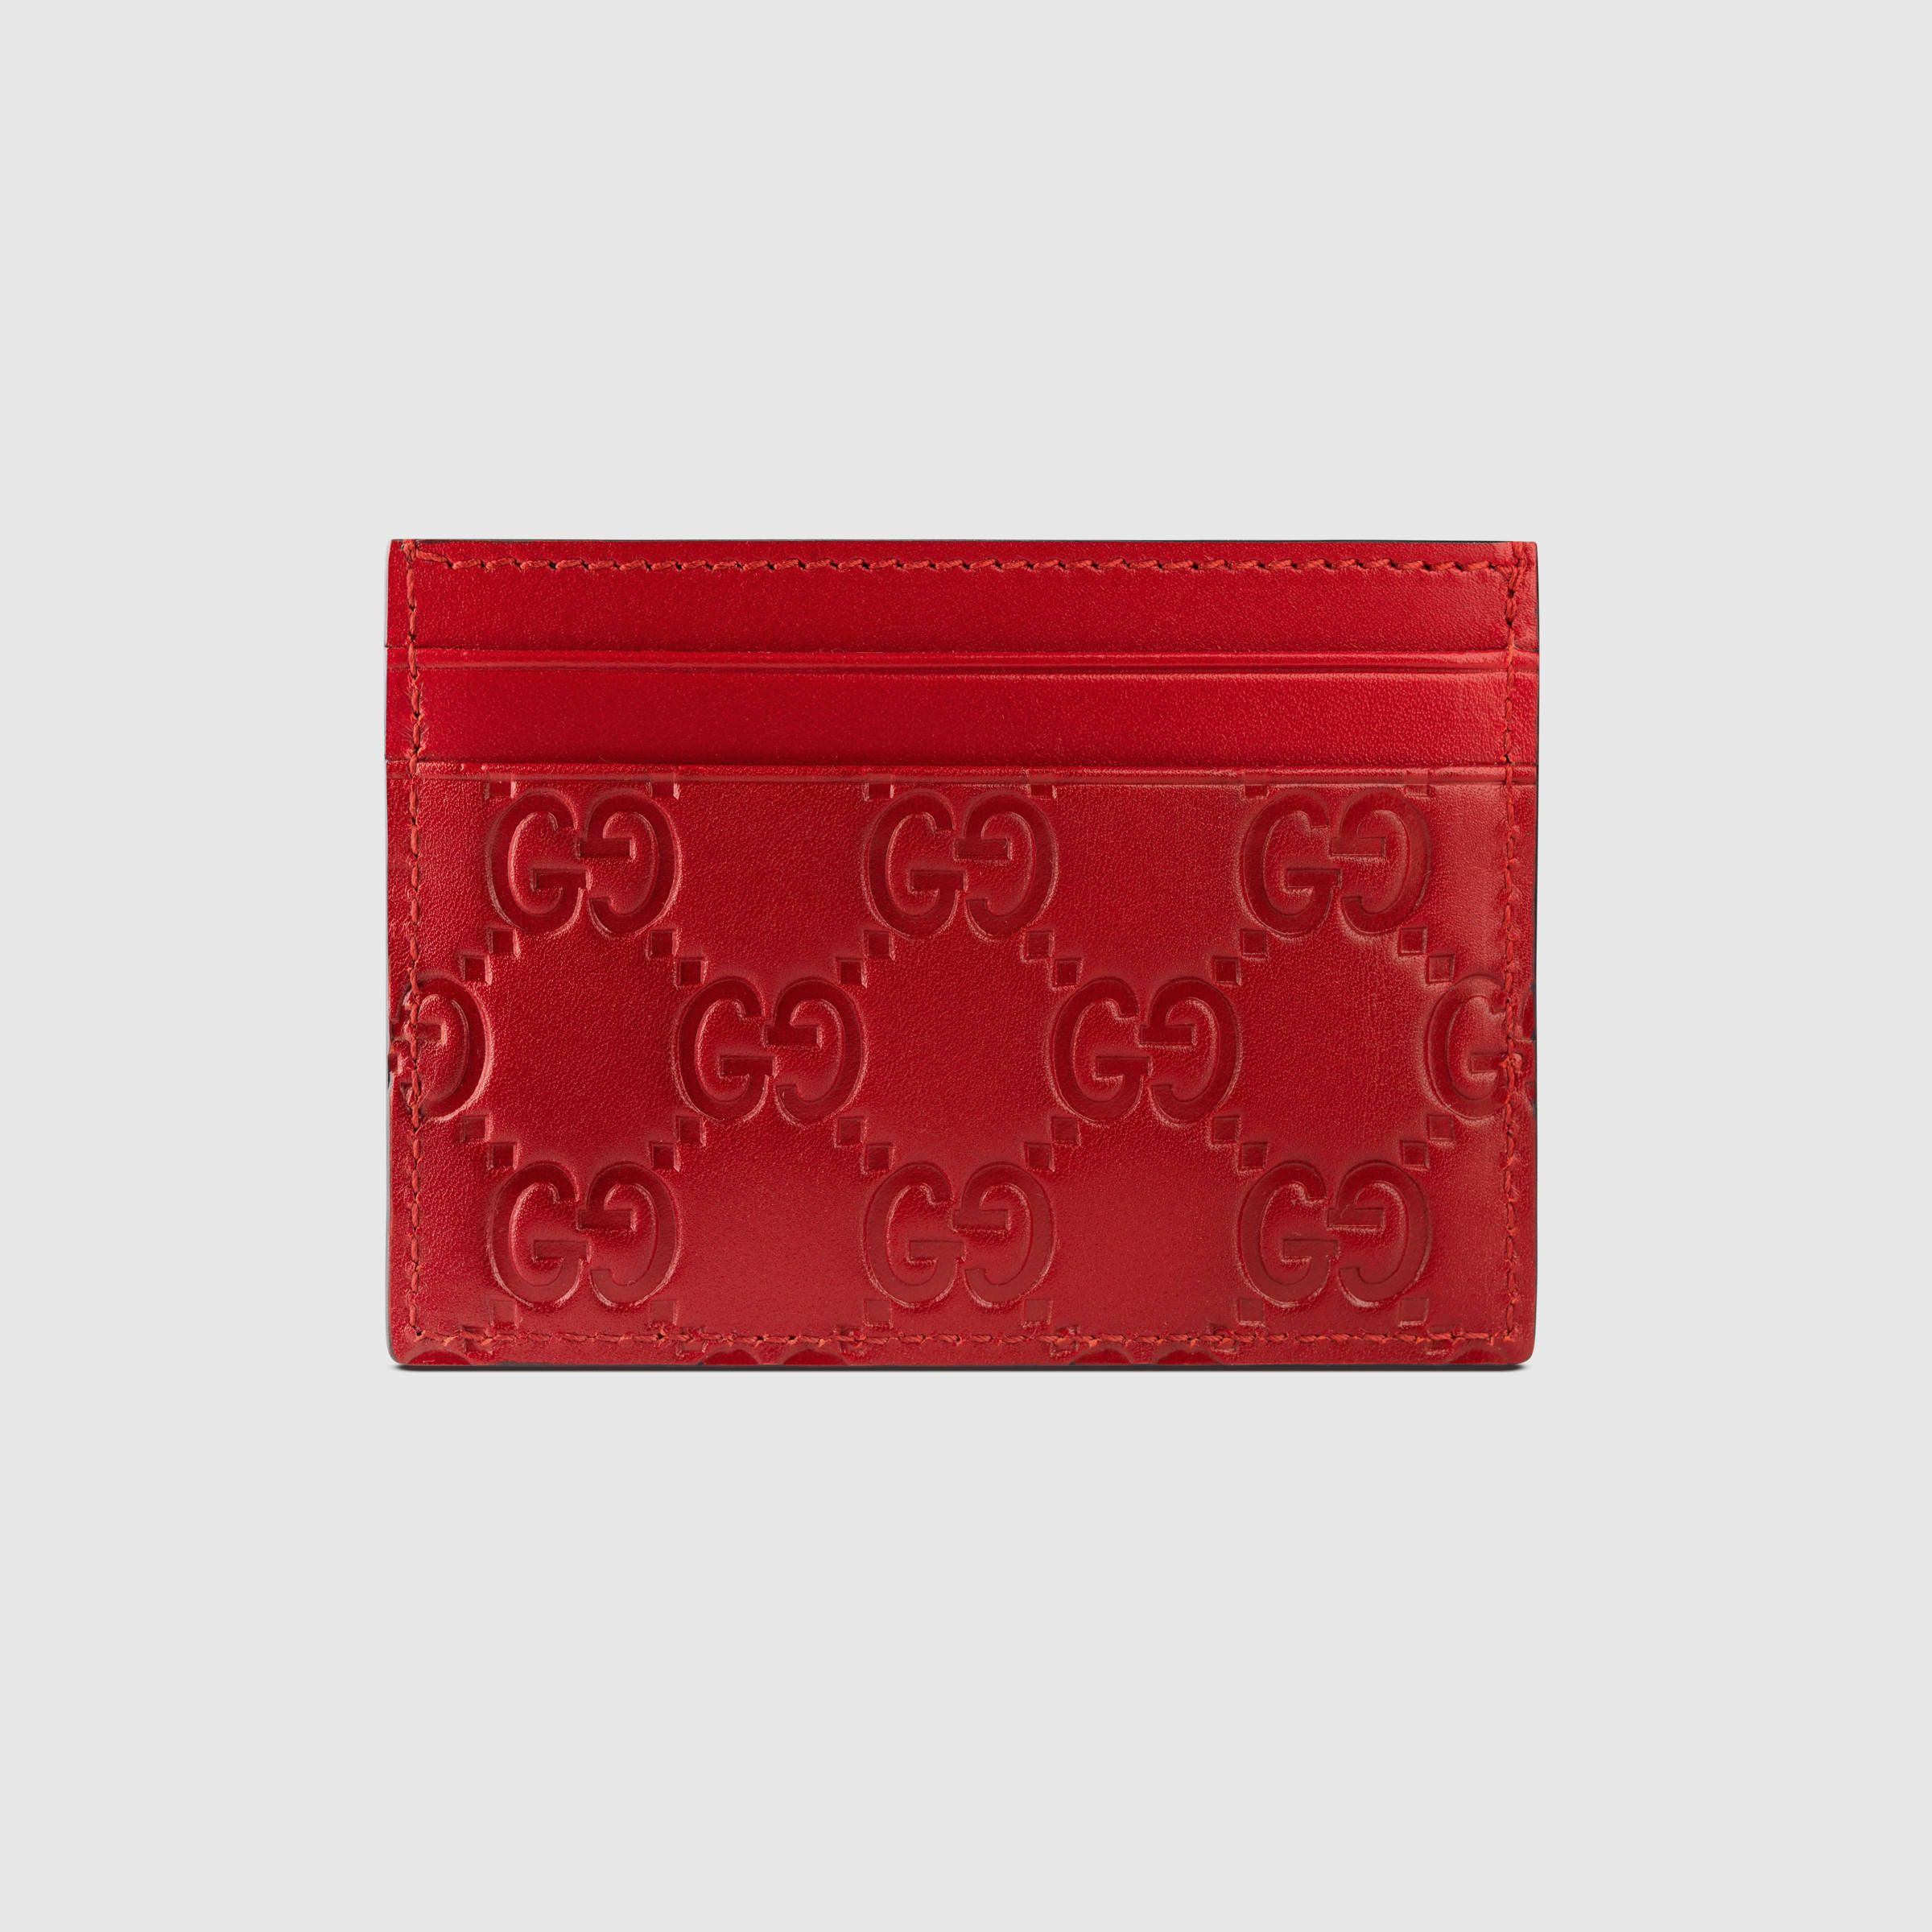 Signature leather card case leather card case card case and gucci gucci men gucci signature leather card case 233166cwc1n6433 colourmoves